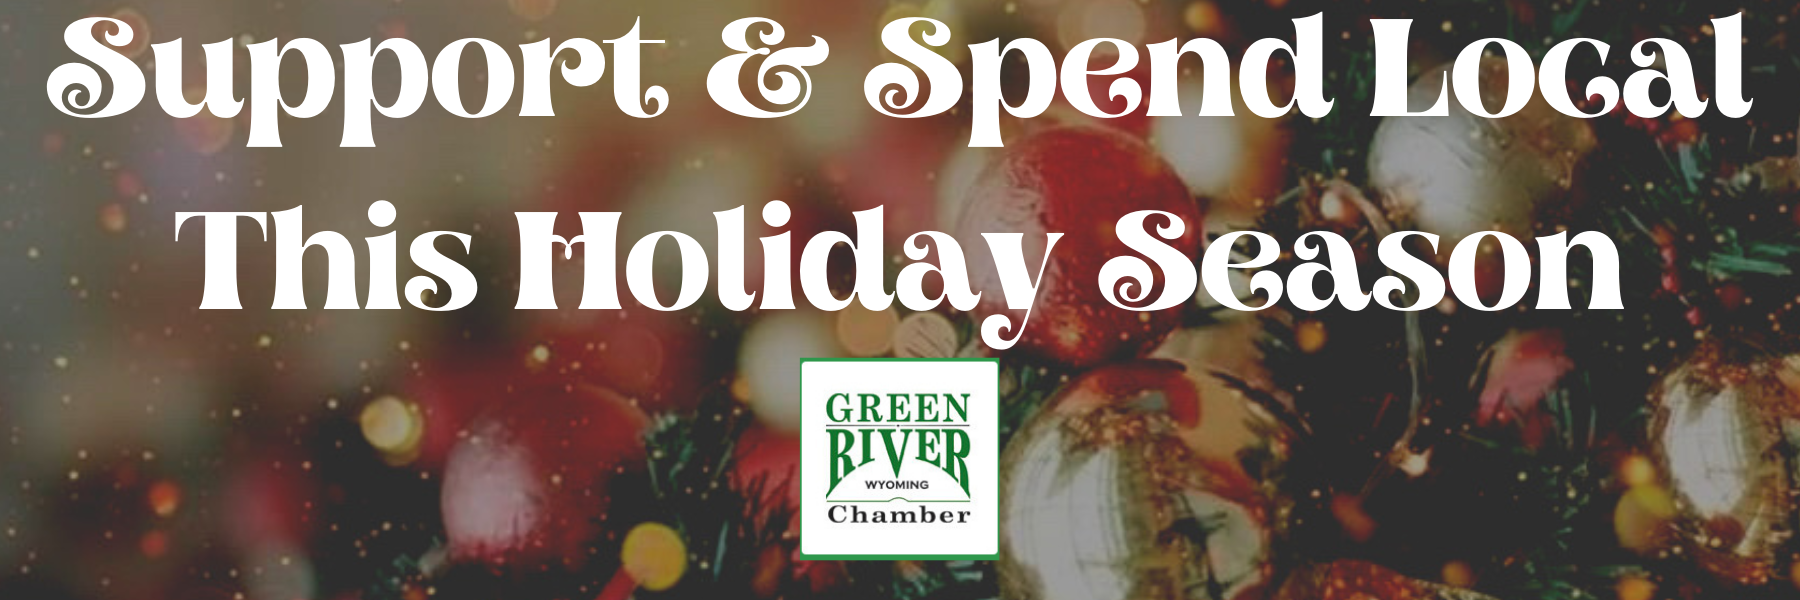 Support & Spend Local This a holiday Season (1)